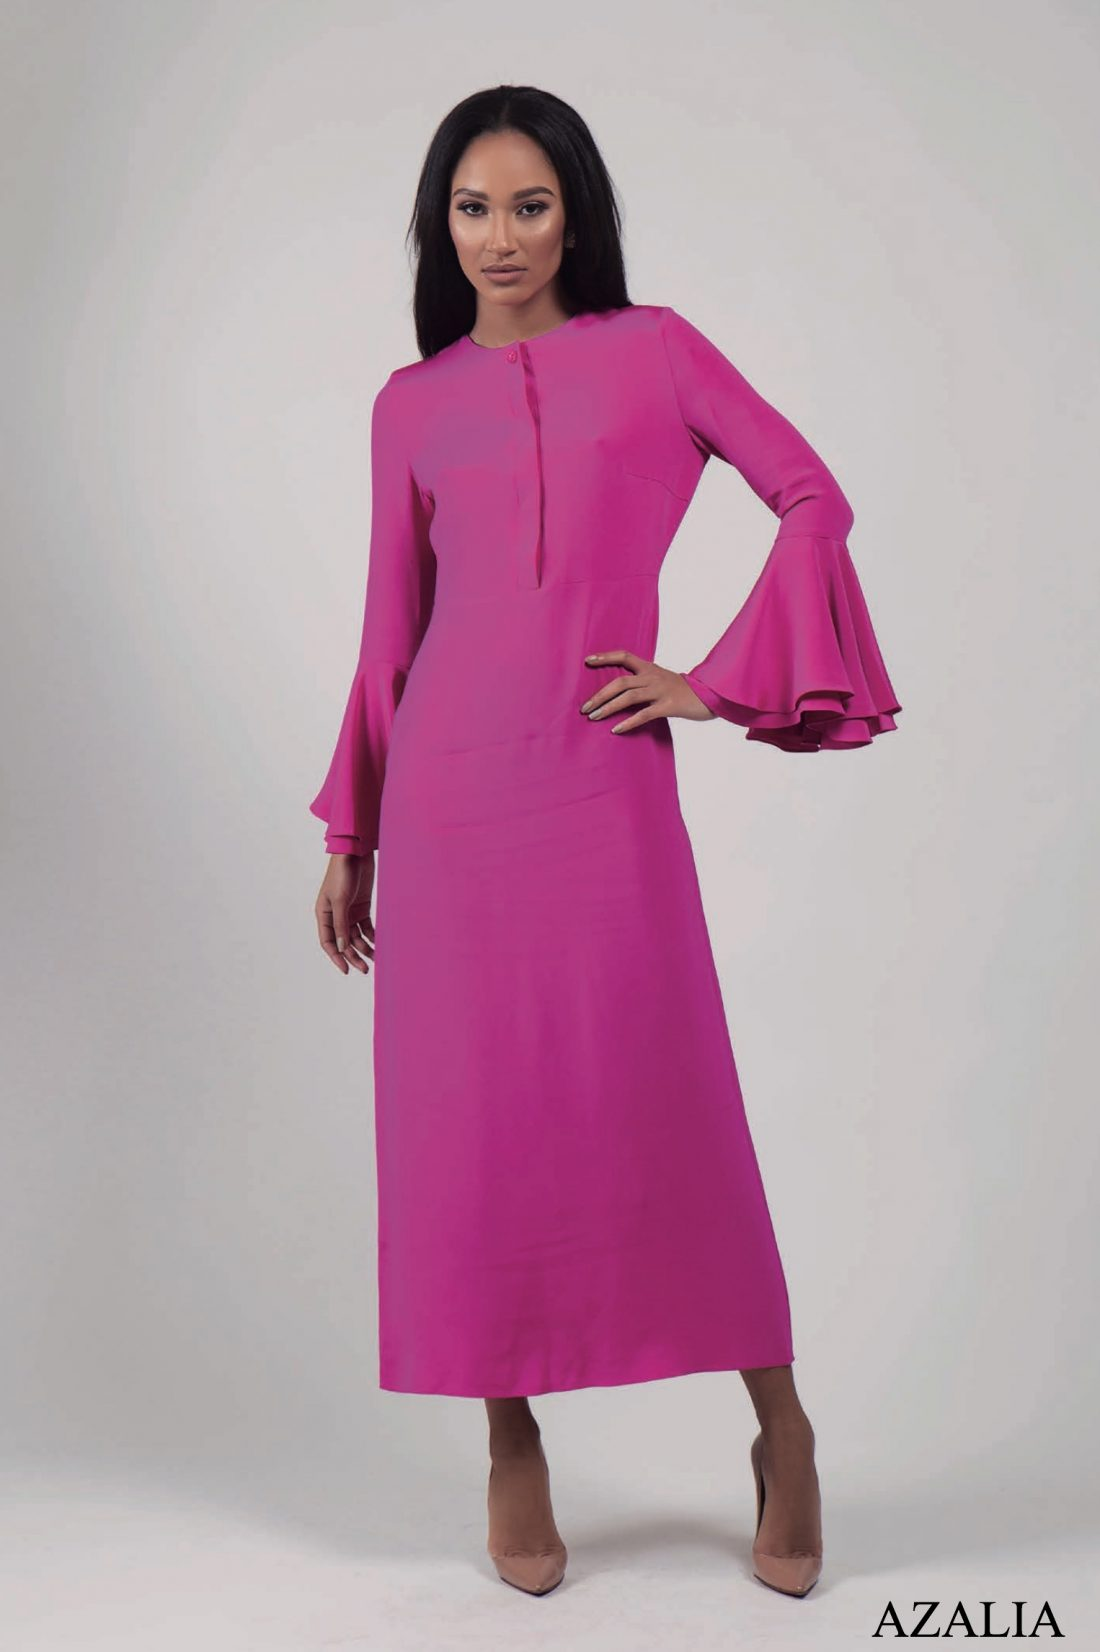 Vibrant hues, gorgeous separates: Introducing Raaah's latest collection